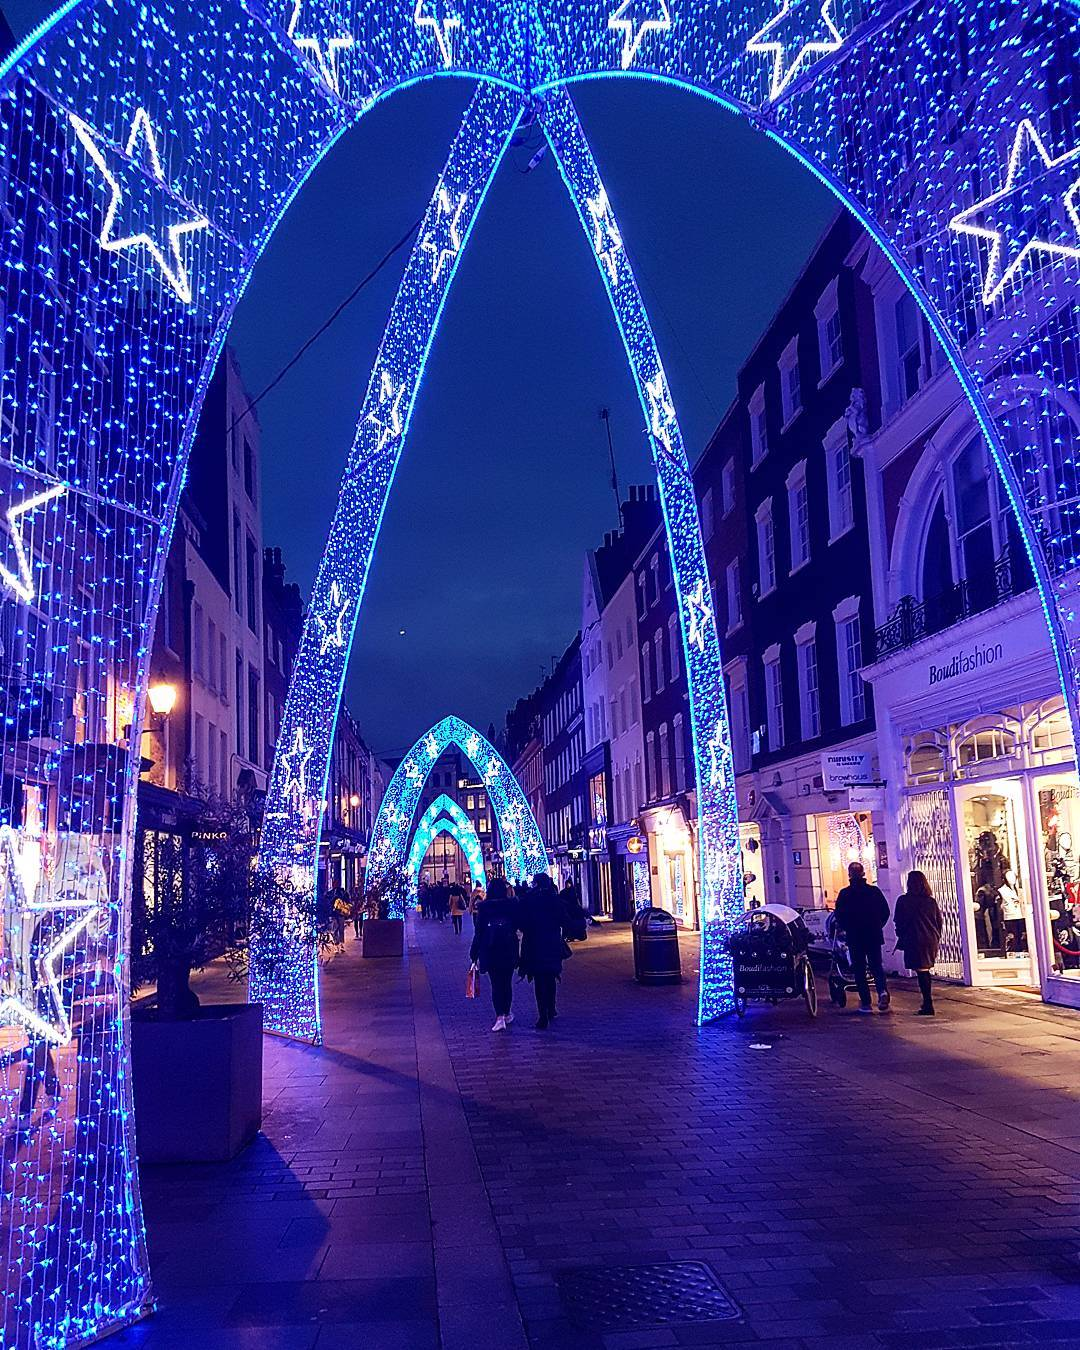 South Molton Street Christmas lights